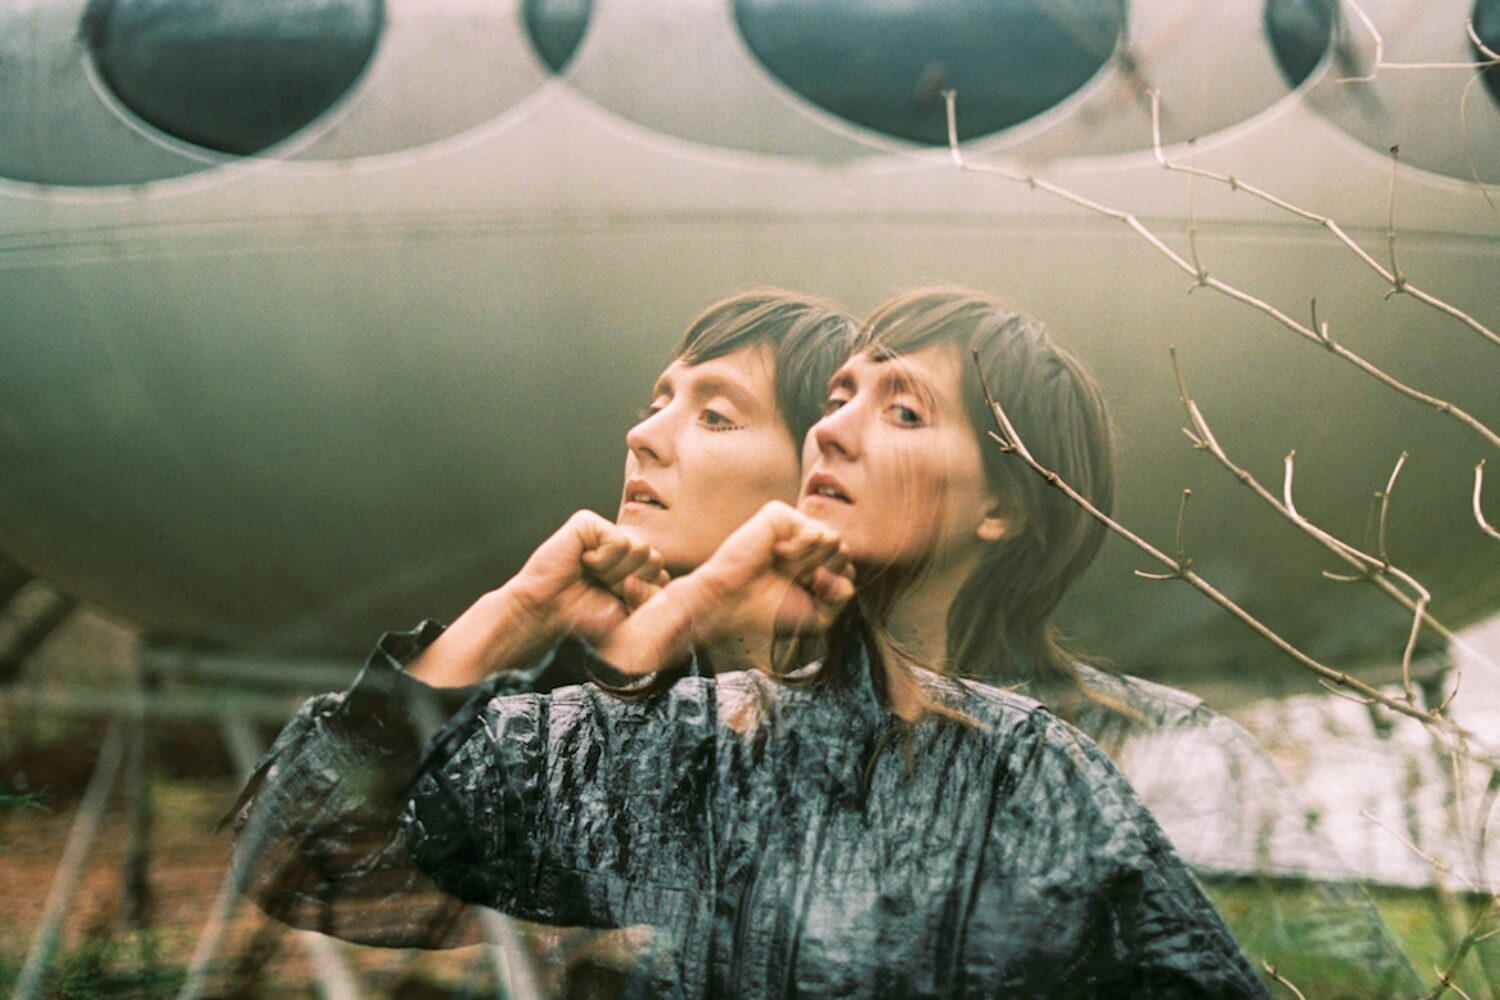 Cate Le Bon dives into new video for 'Rock Pool'